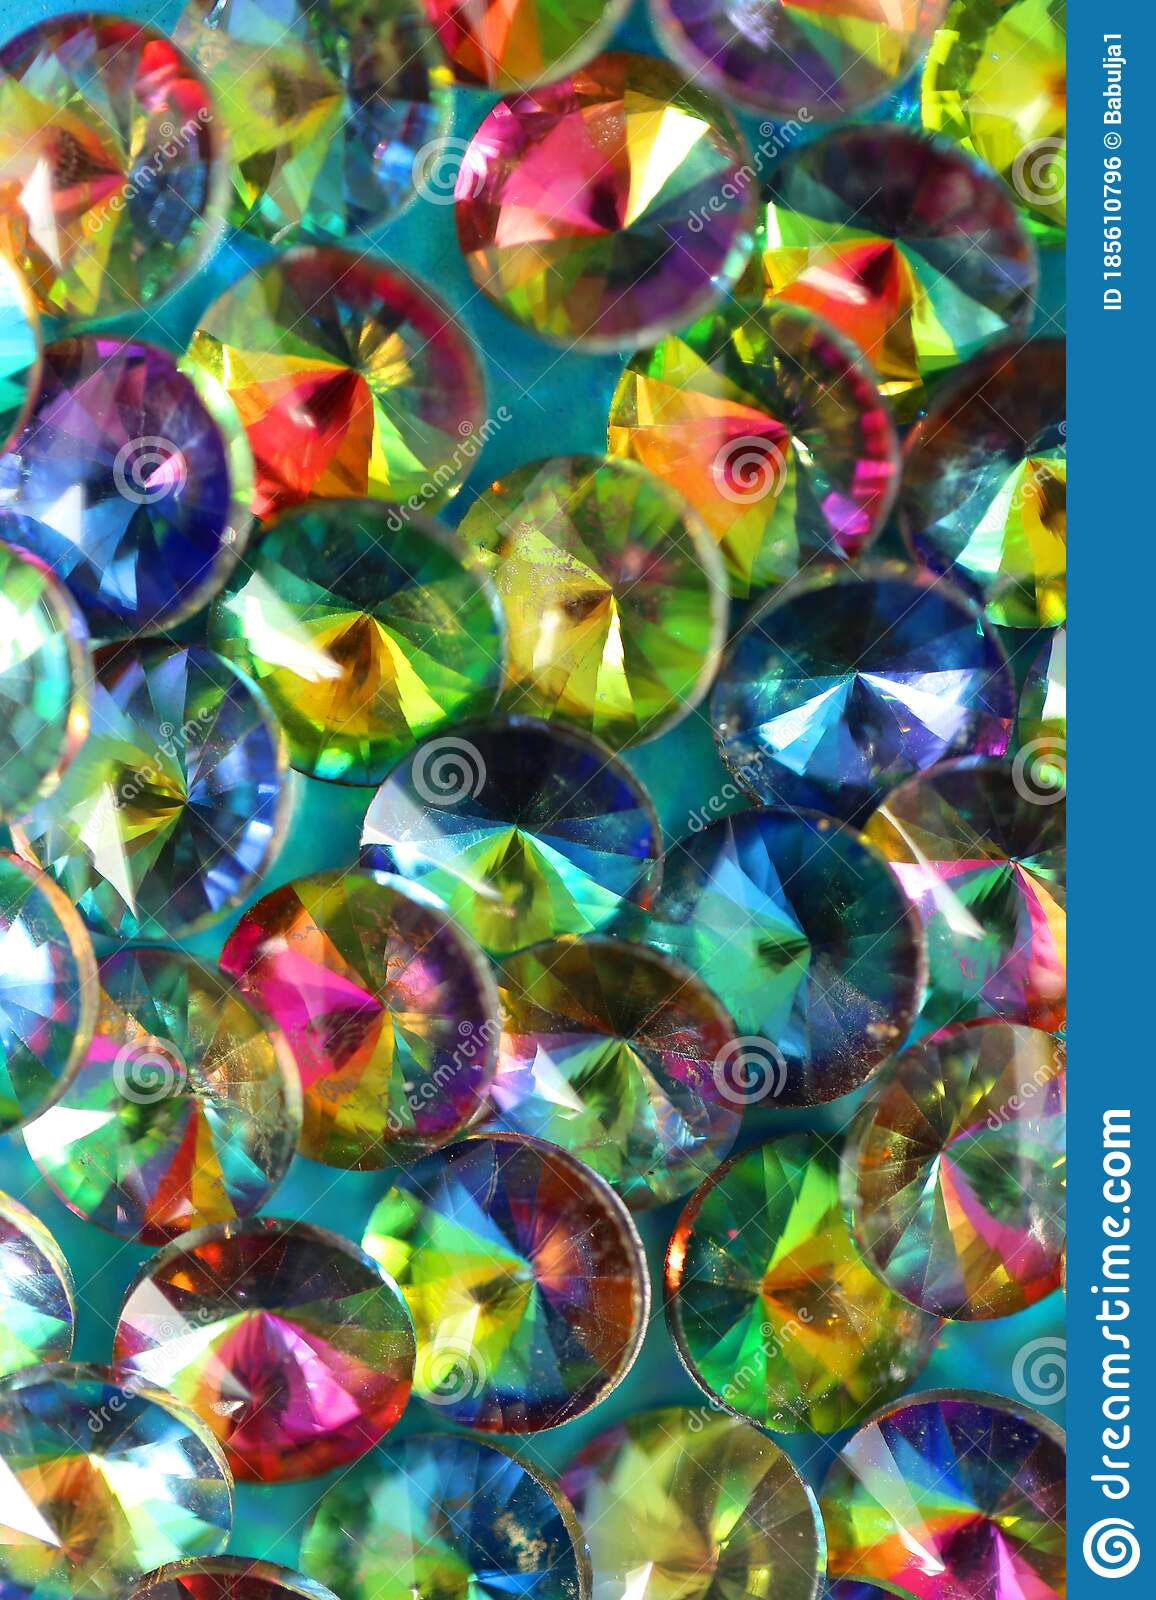 Wallpaper Phone Shining Bead Background Stock Photo Image Of Marbles Christmas 185610796